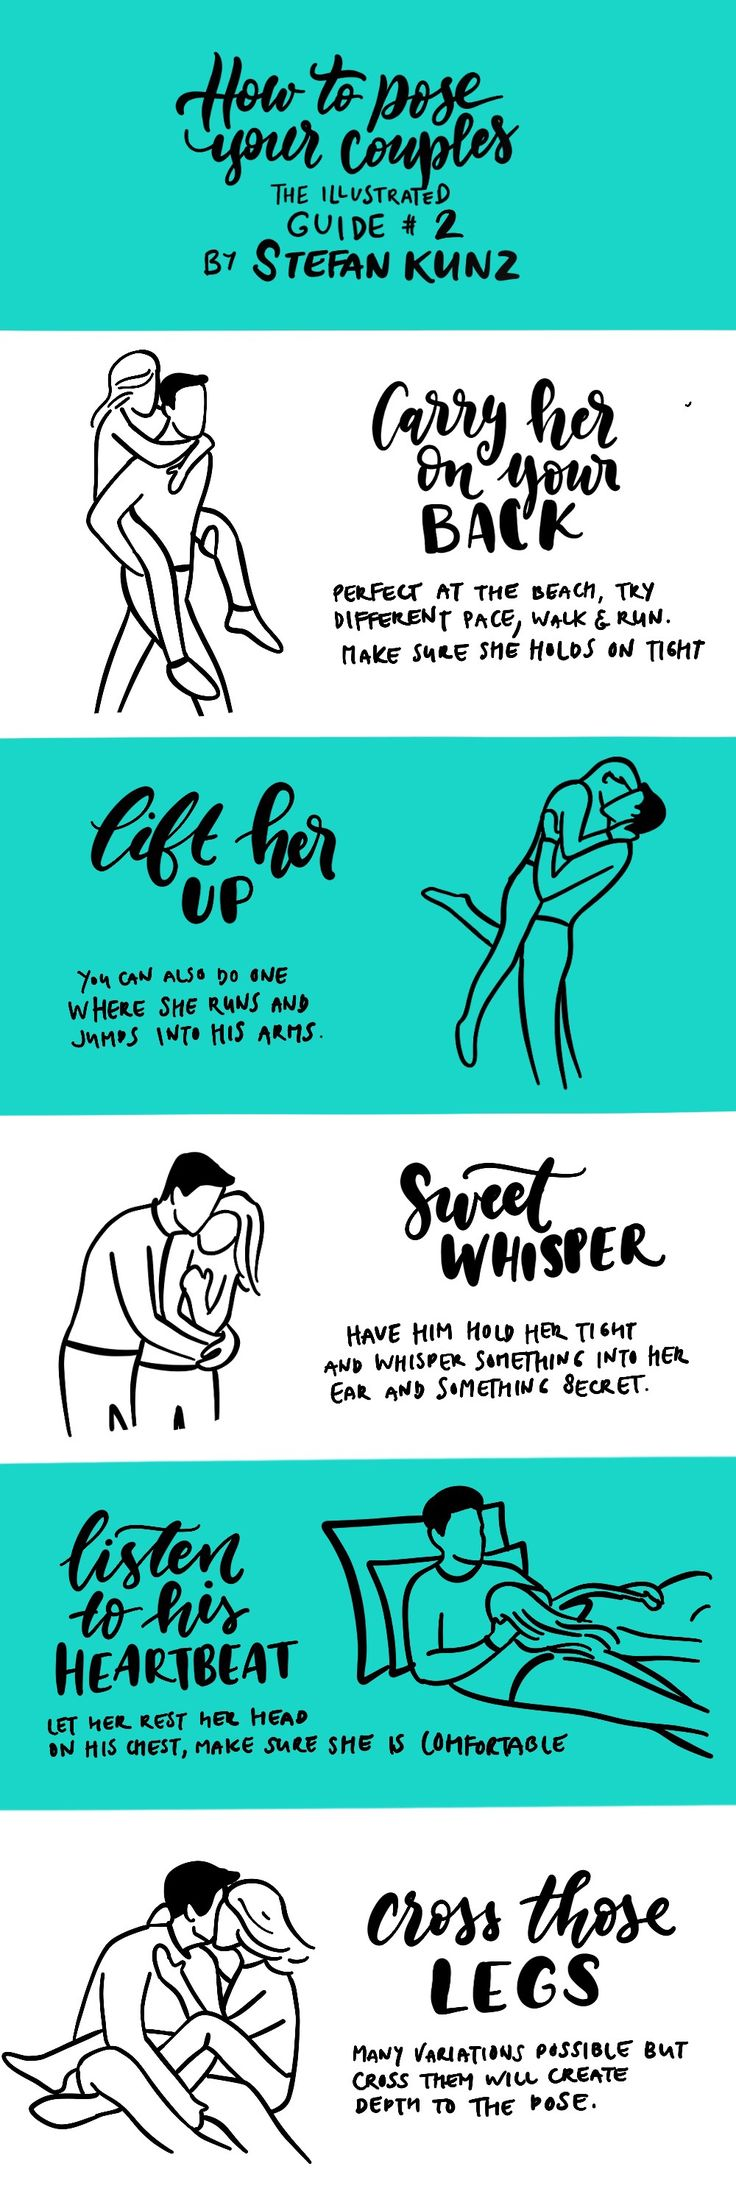 How to pose you couples - the illustrated guide #2 by Stefan Kunz  see examples and more: